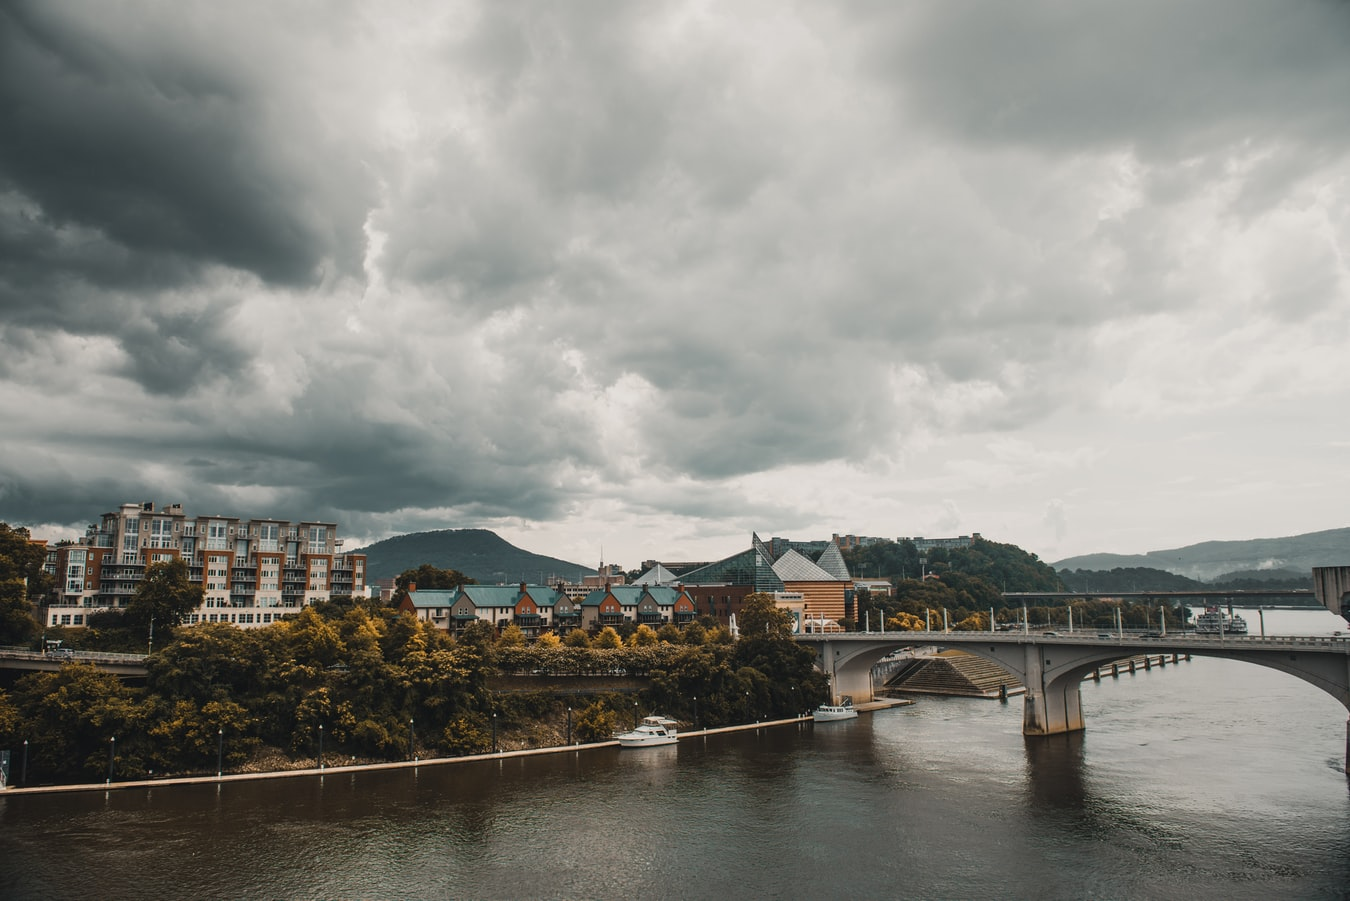 bridge and buildings on an overcast day in Chattanooga, TN